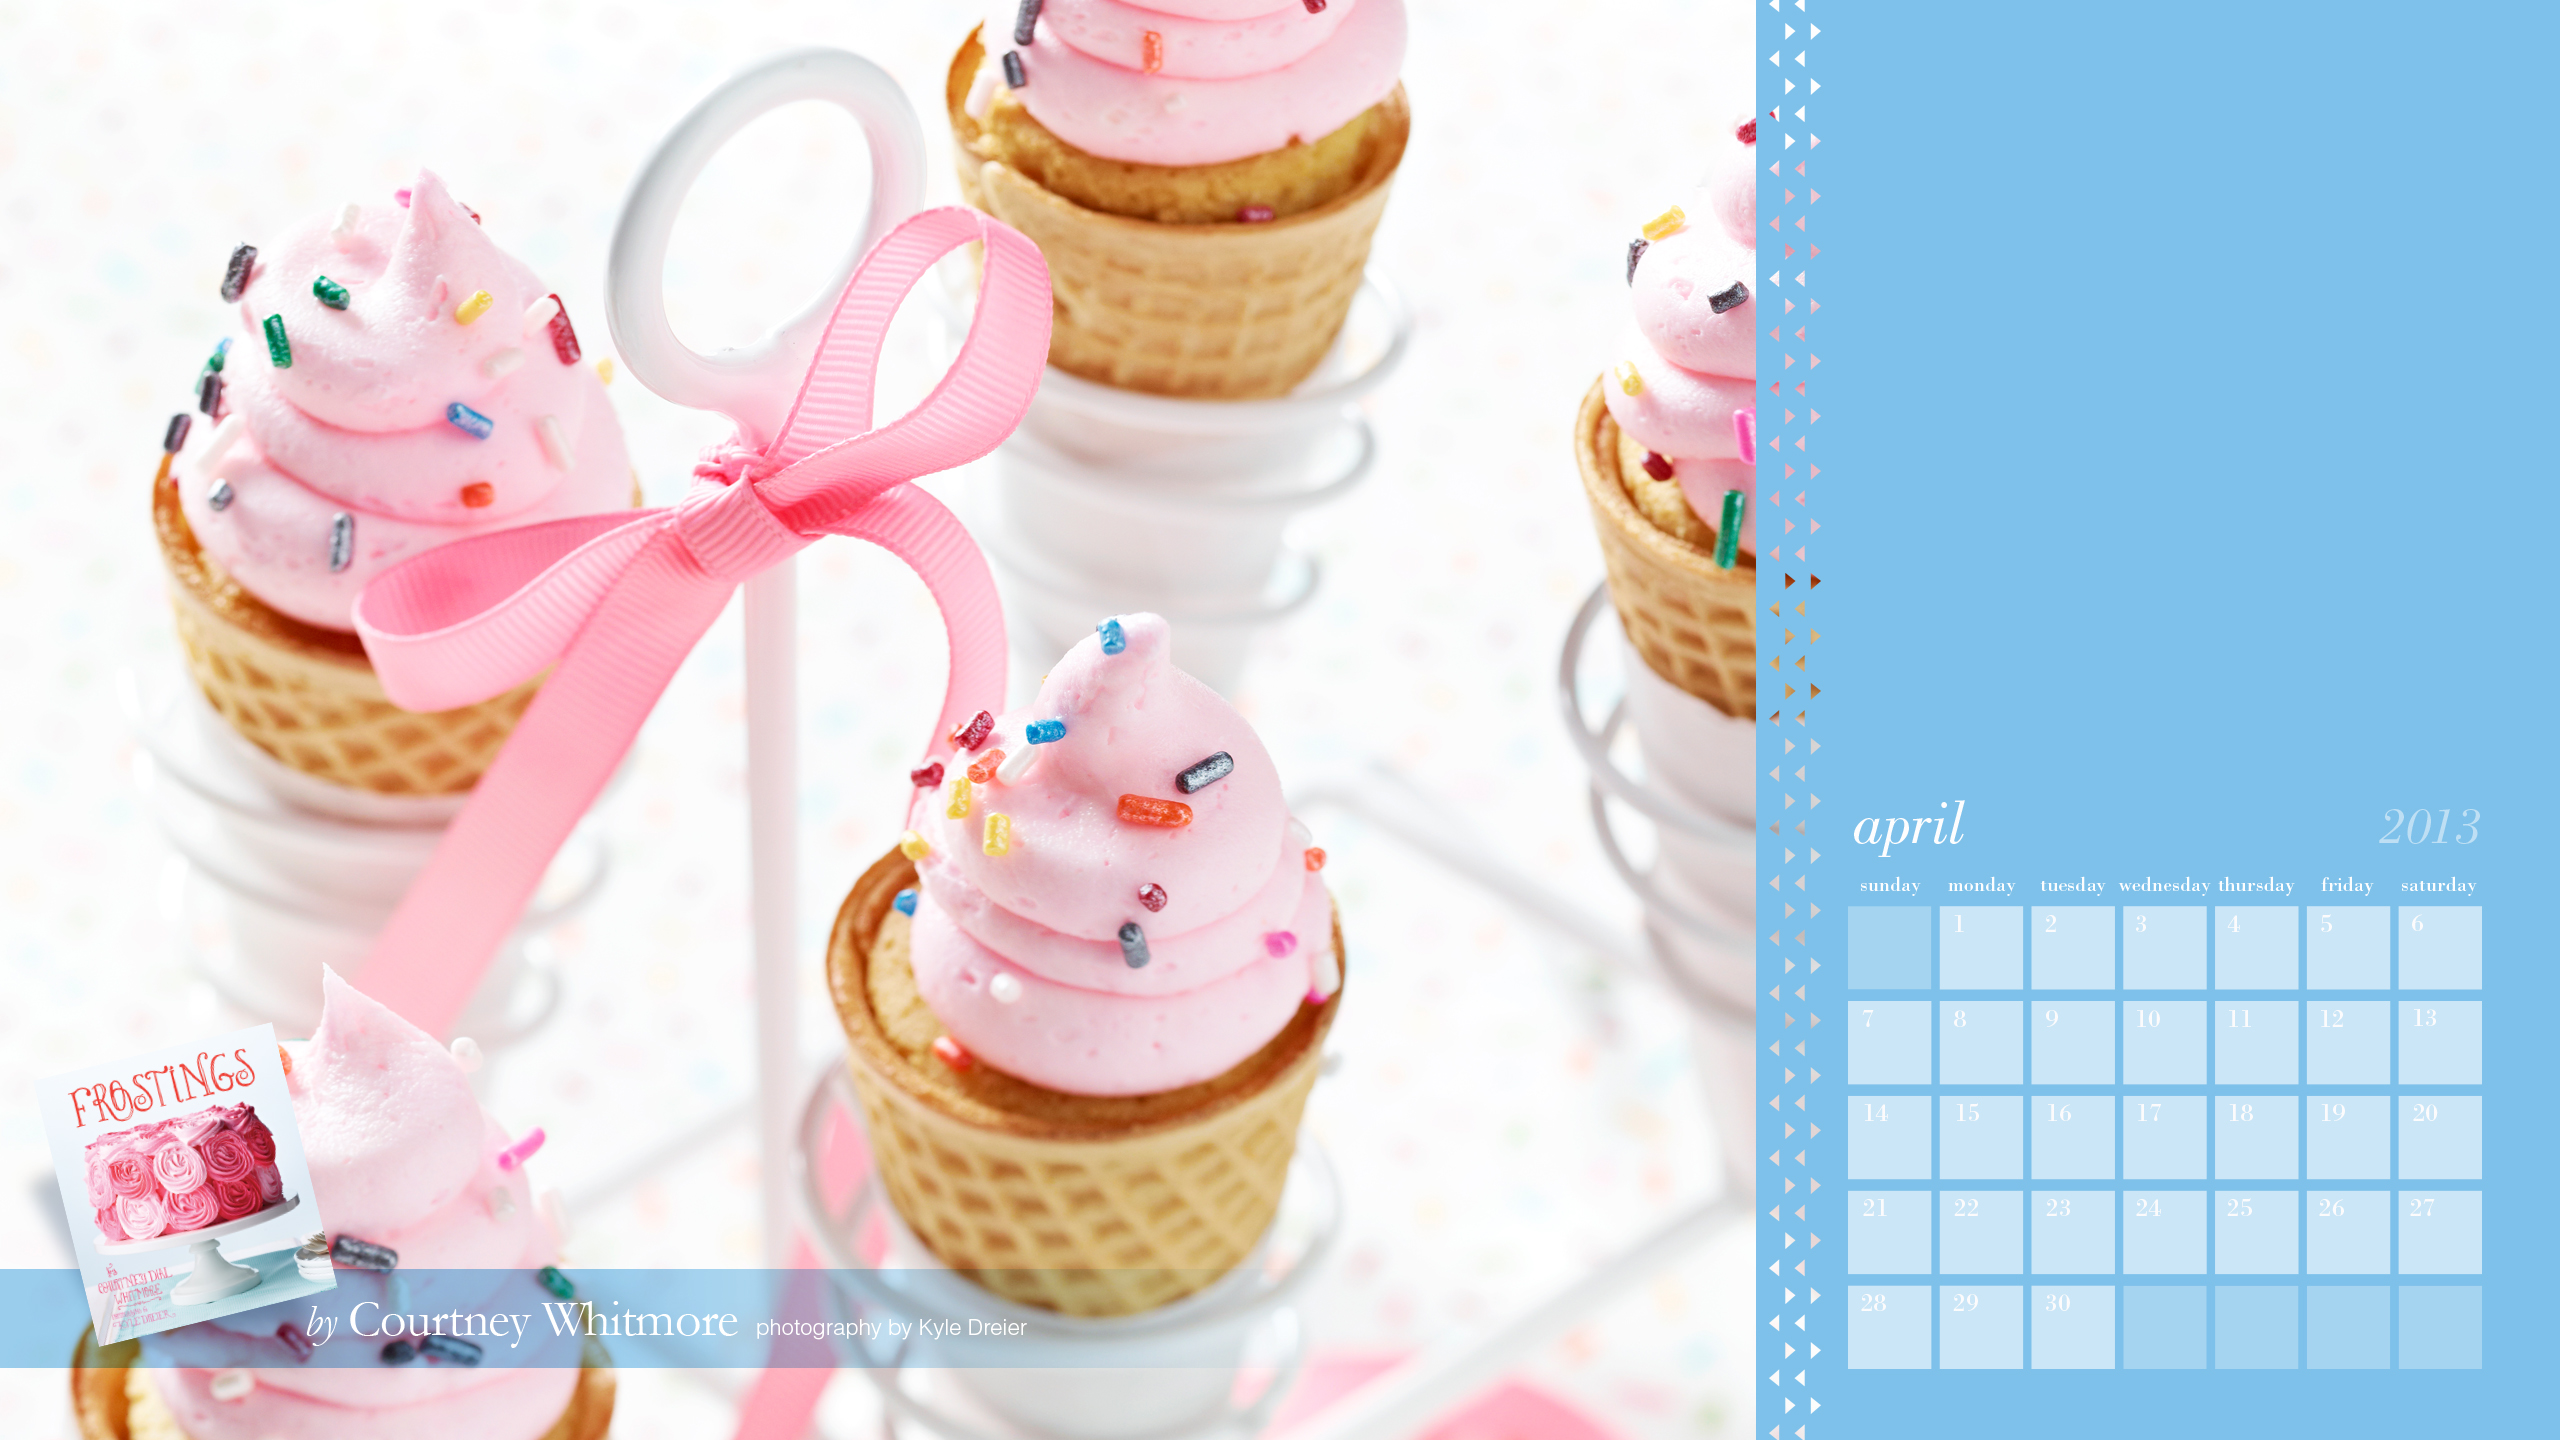 Free Desktop Calendar from Pizzazzerie's book Frostings!